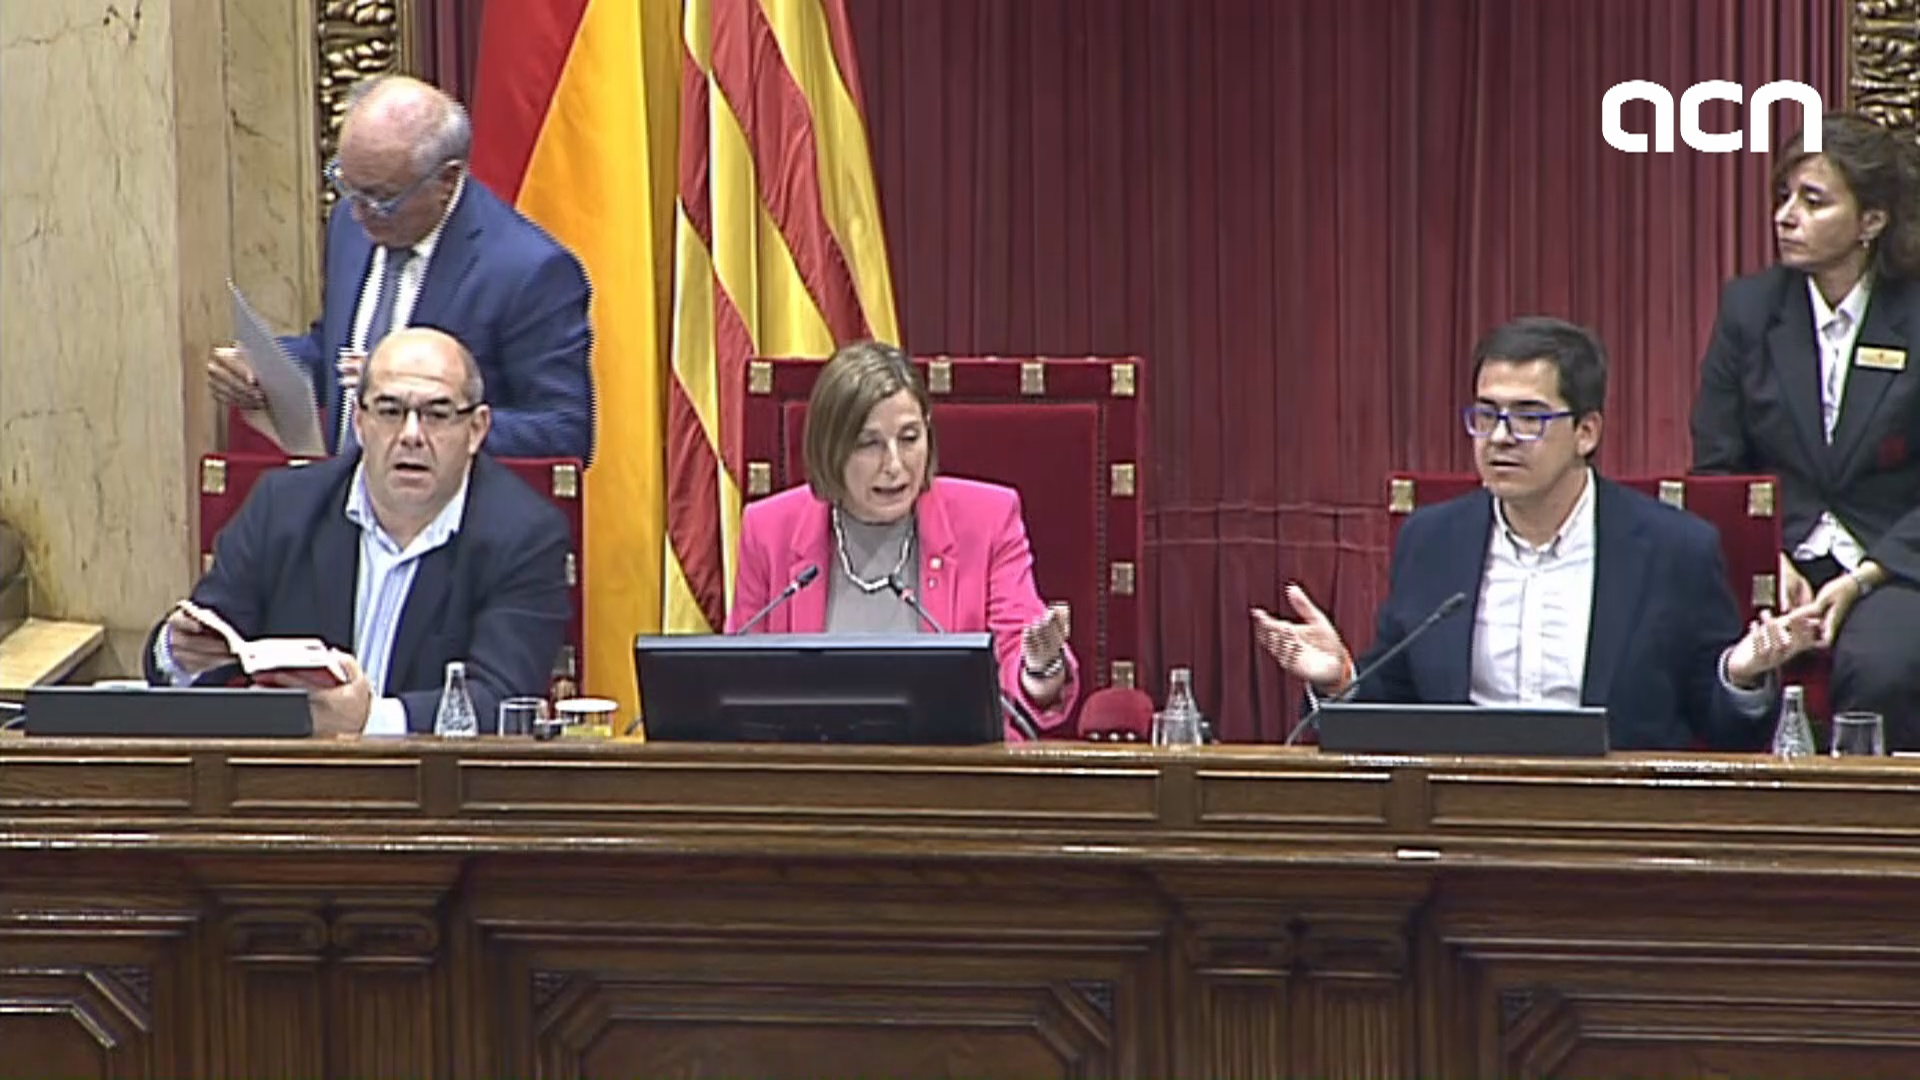 Carme Forcadell will not continue as Parliament president